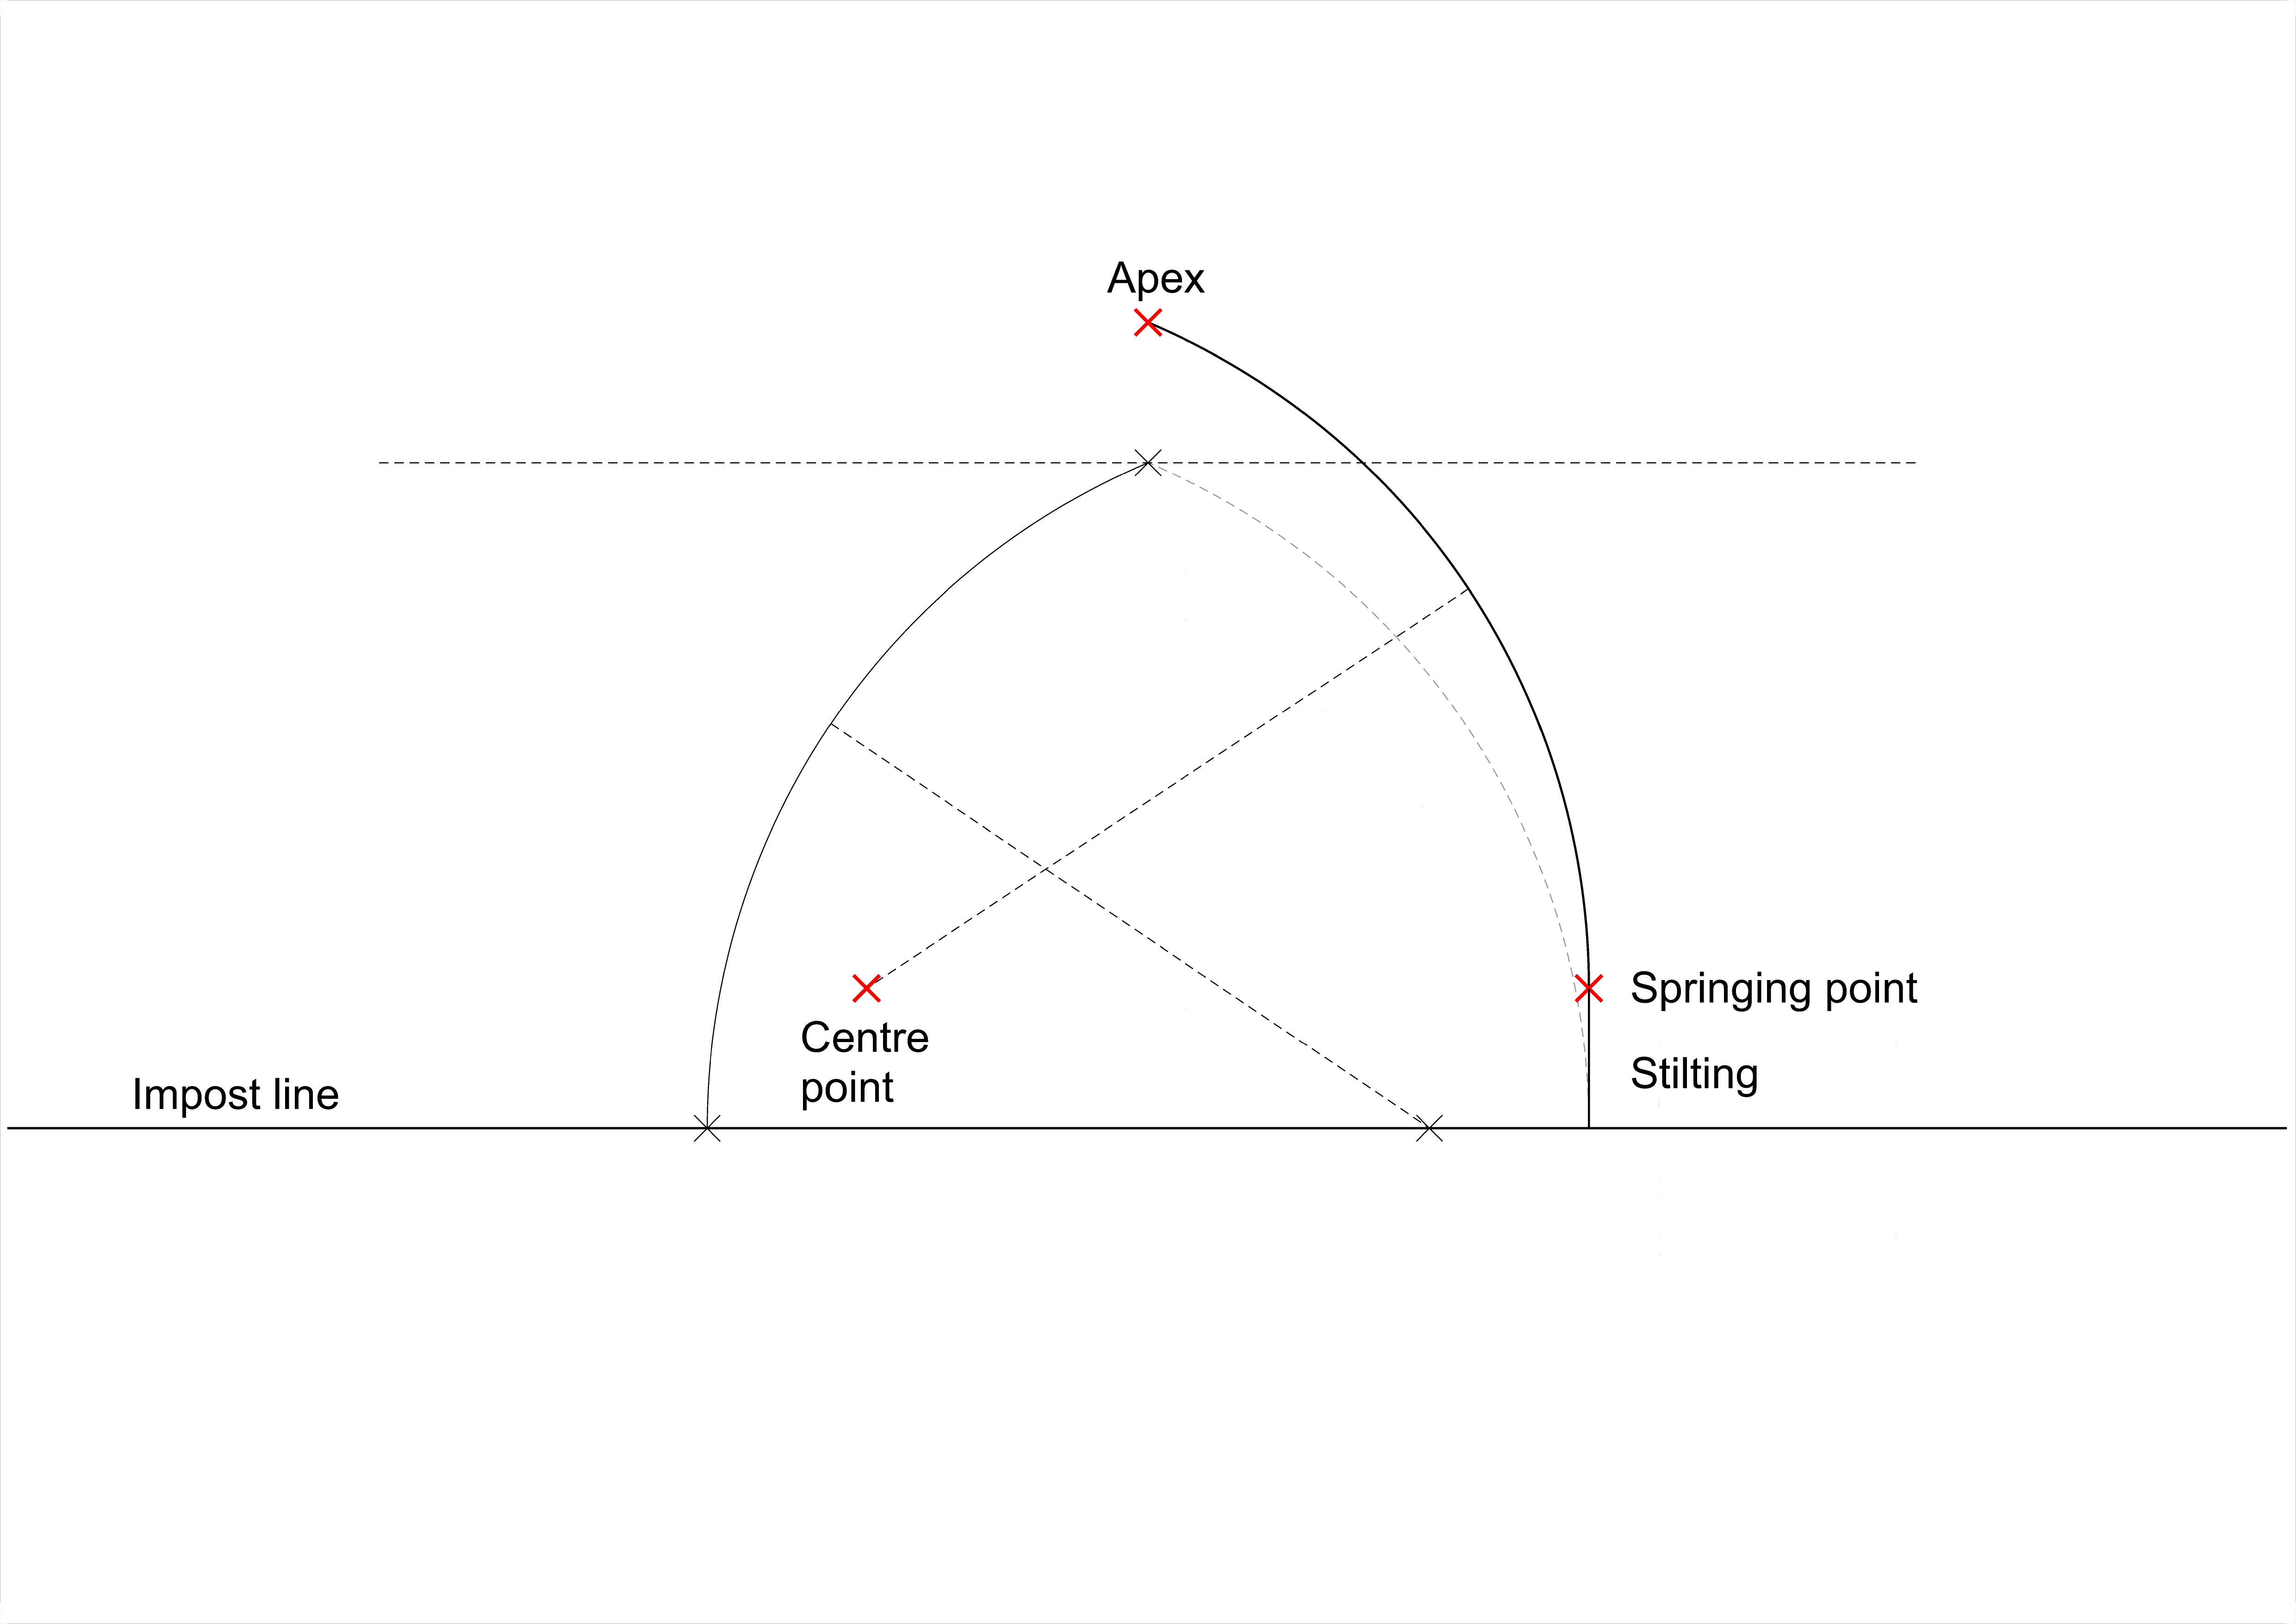 Left-hand arc as previous; right-hand arc showing effect of raising the centre point